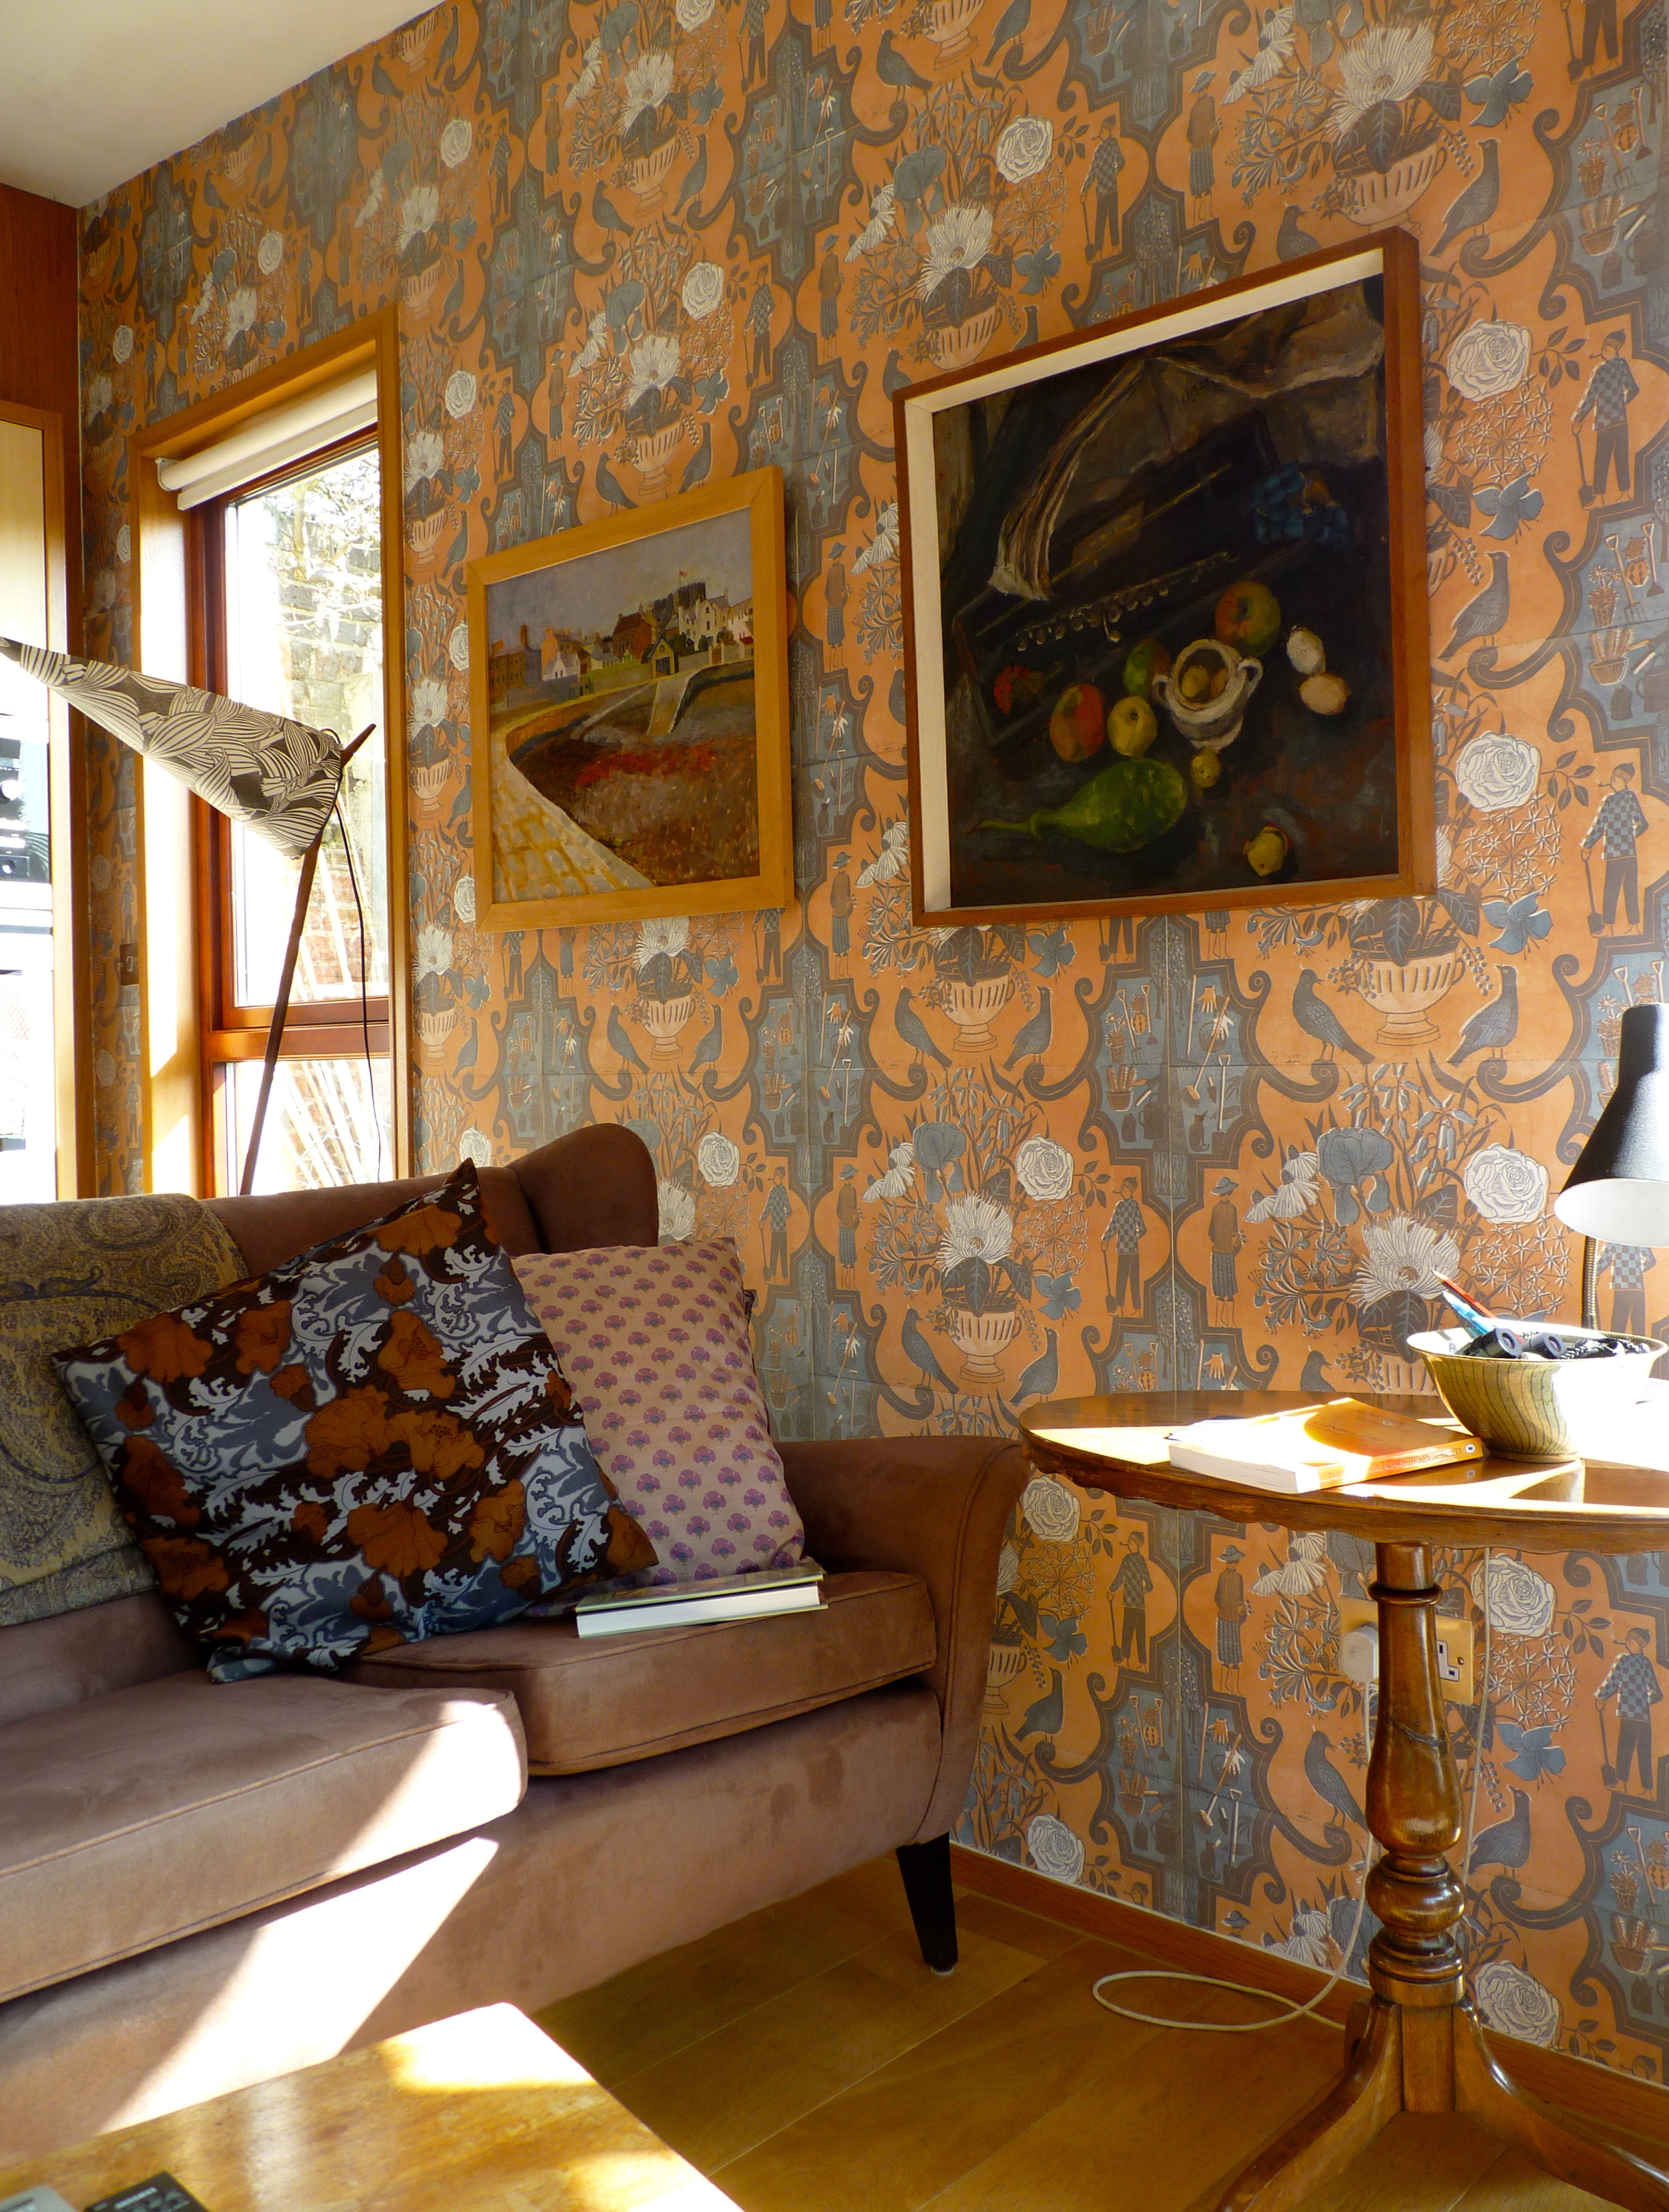 """Gardeners"" installed in Marthe's sitting room, along with a lamp designed by her late husband, featuring ""Solomon's Seal"" on the shade. A  new version of this lamp  is being produced by her grandson Joe. Both photos of Marthe's home from  Bible of British Taste ."